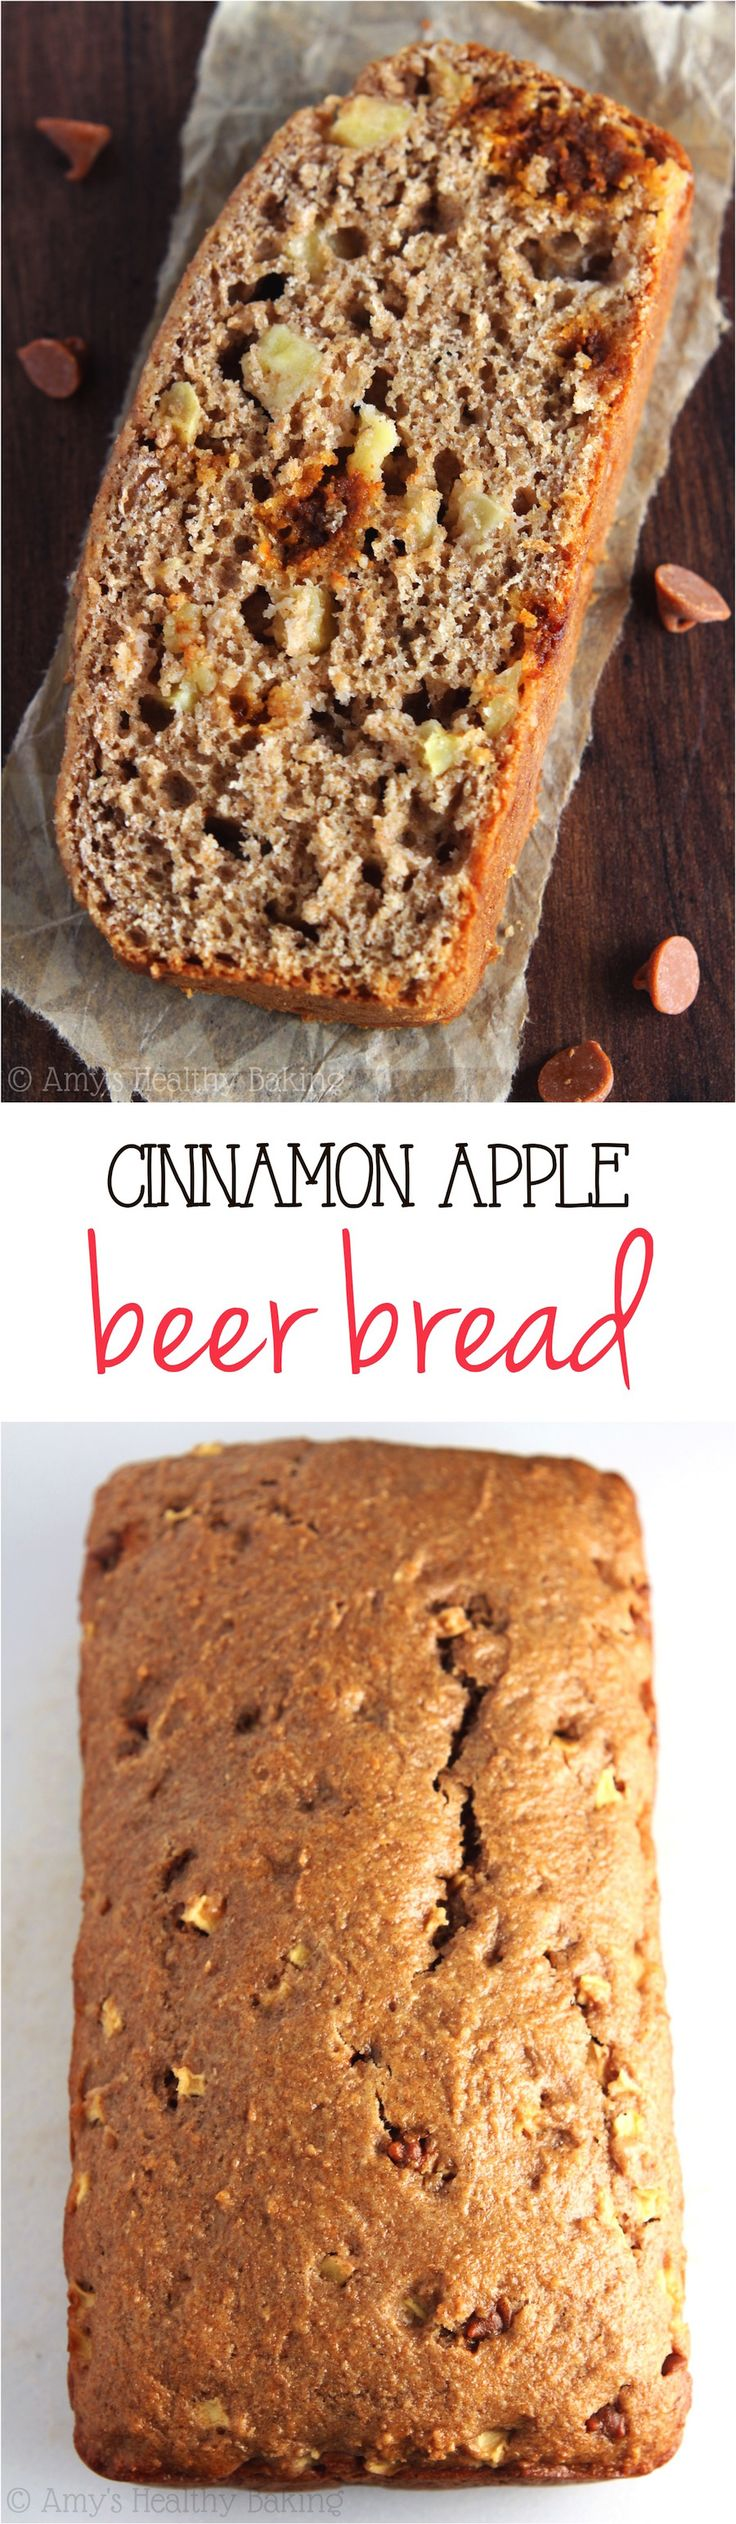 Cinnamon Apple Beer Bread -- a sweet & healthier recipe that's perfect for fall! My family made the whole loaf disappear in 5 minutes -- it's THAT good!